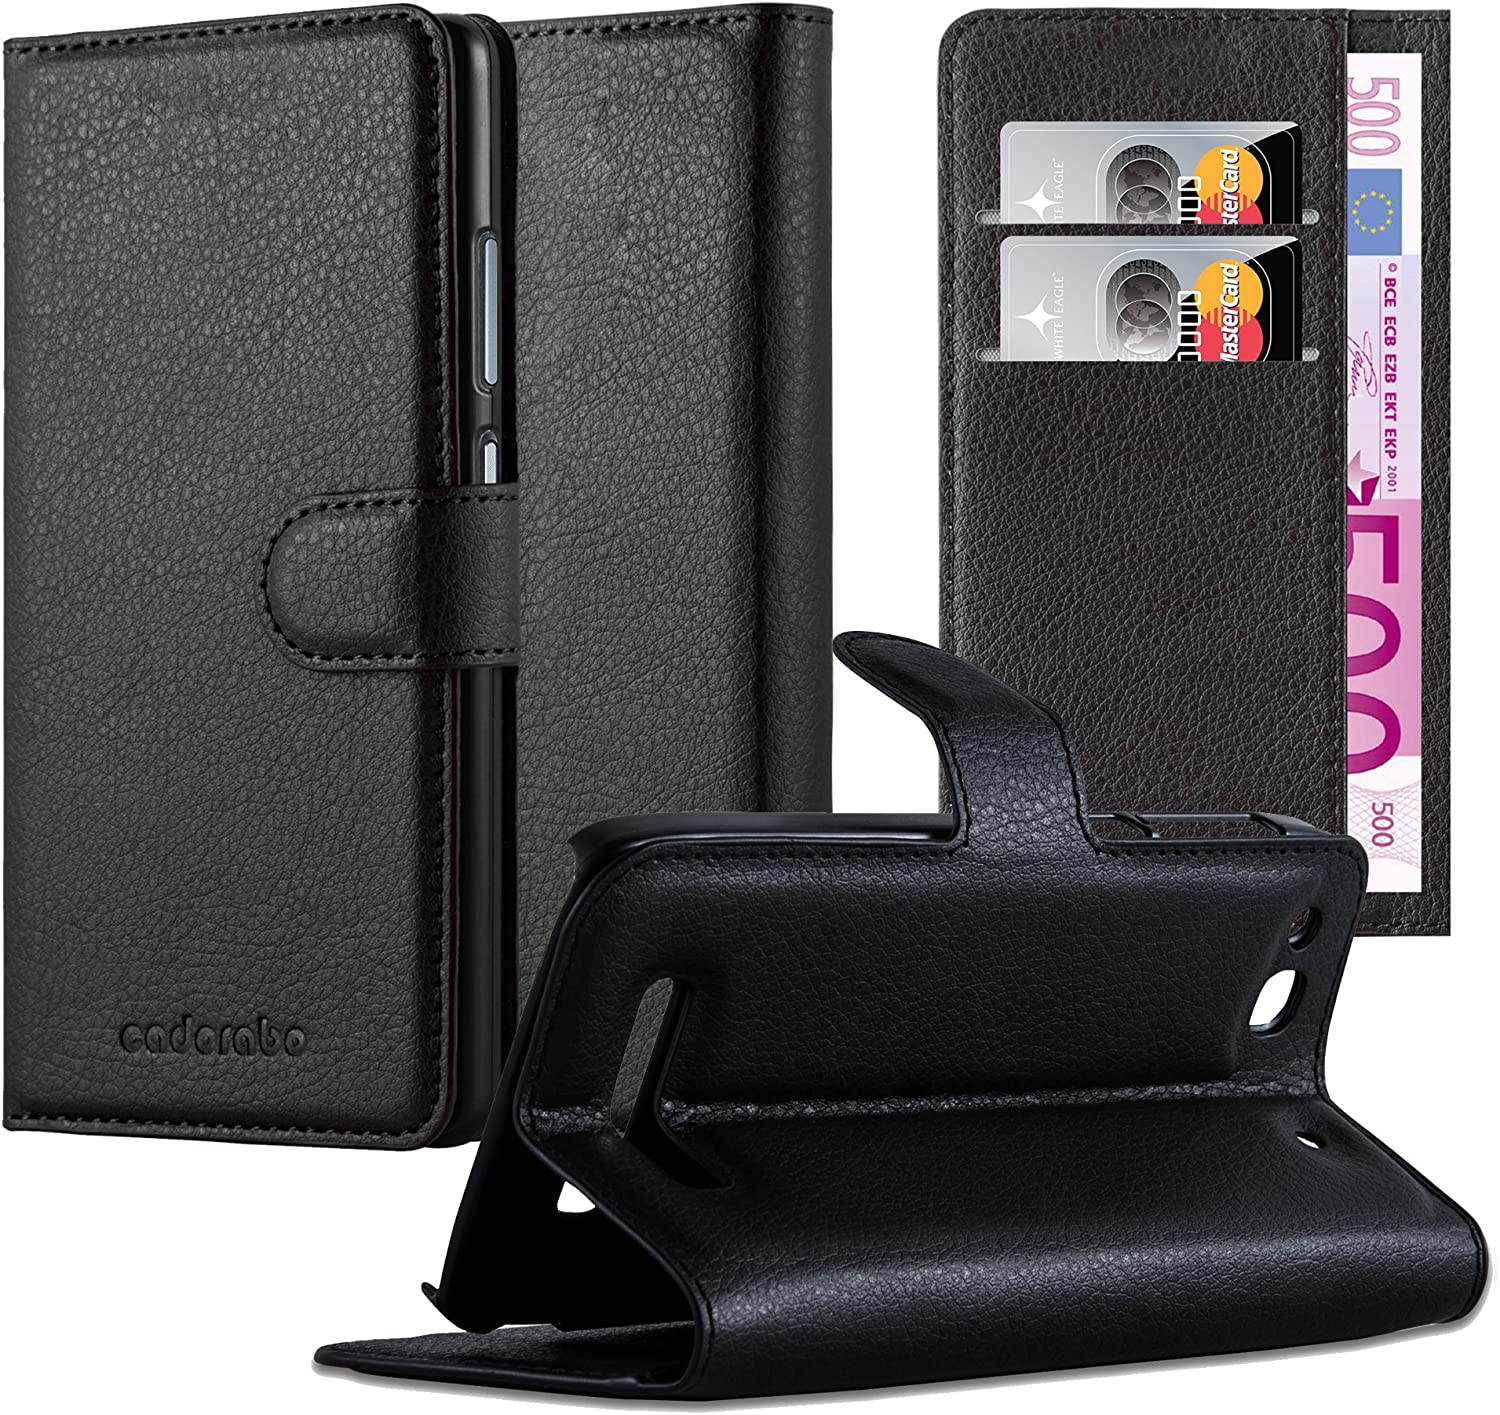 Cadorabo DE-103126 store Alcatel Dealing full price reduction OneTouch Idol Case Phone Alpha Mobile